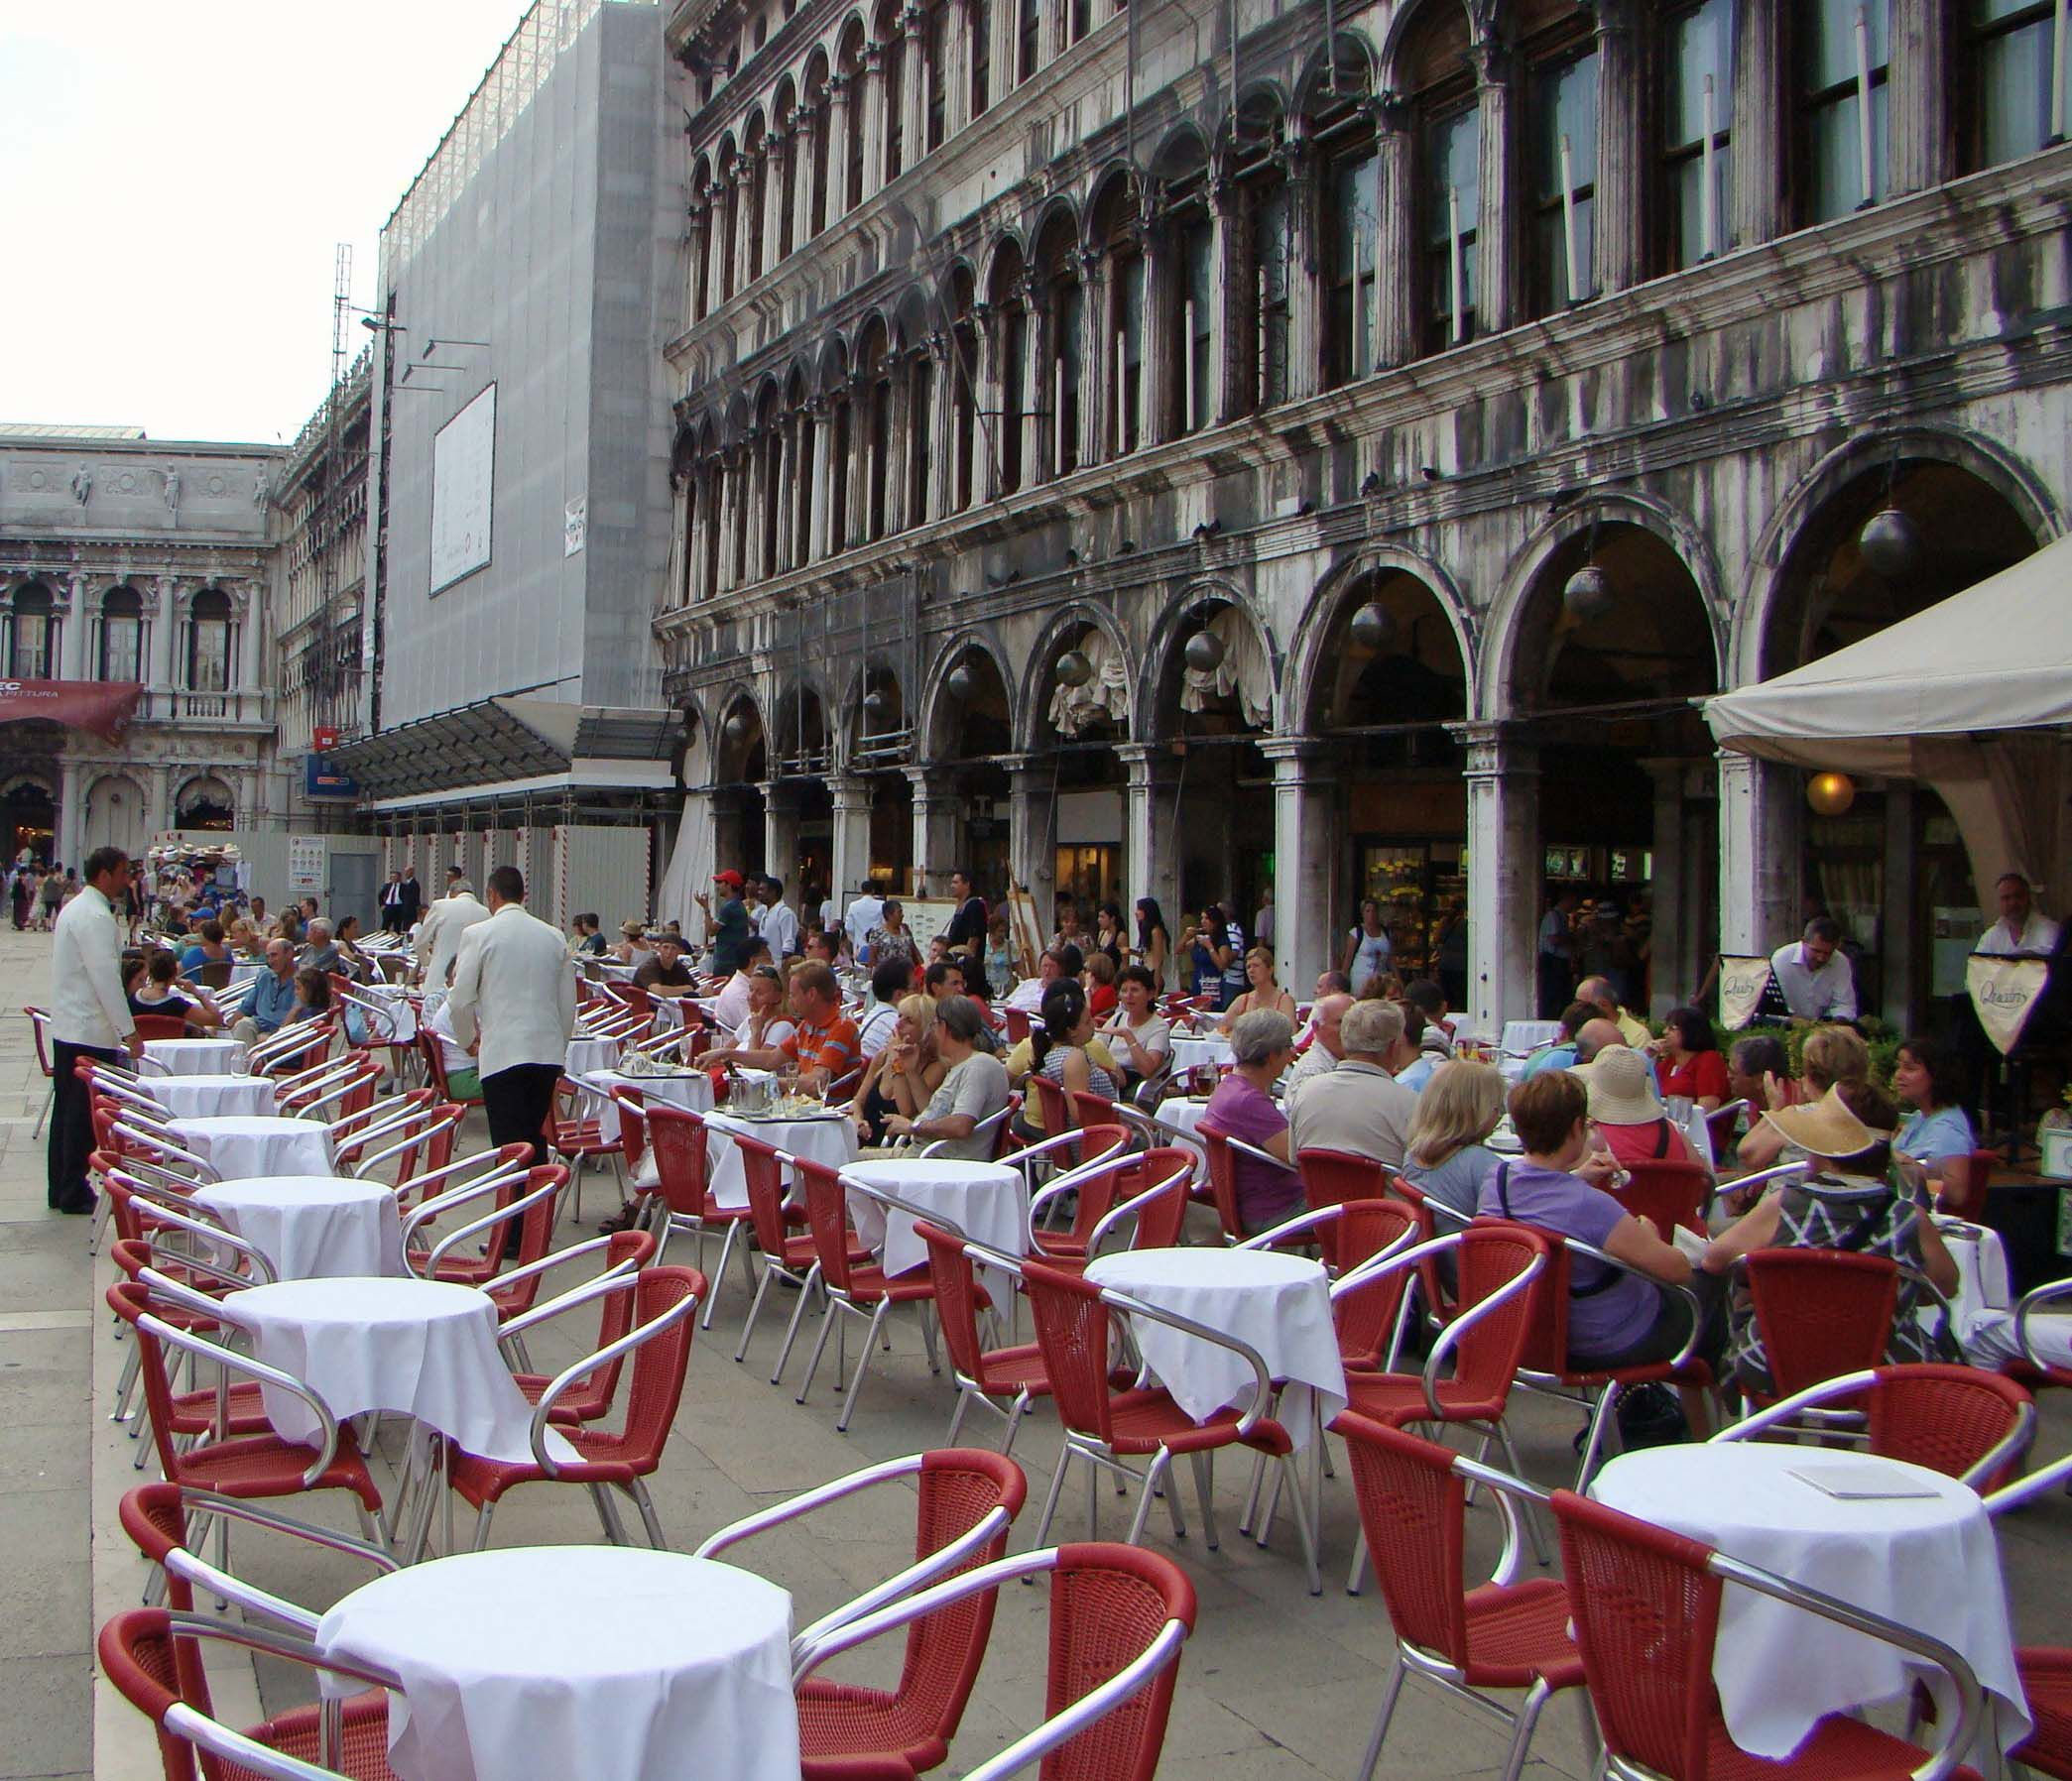 When dining in Venice, Italy, try to avoid high-traffic tourist areas.